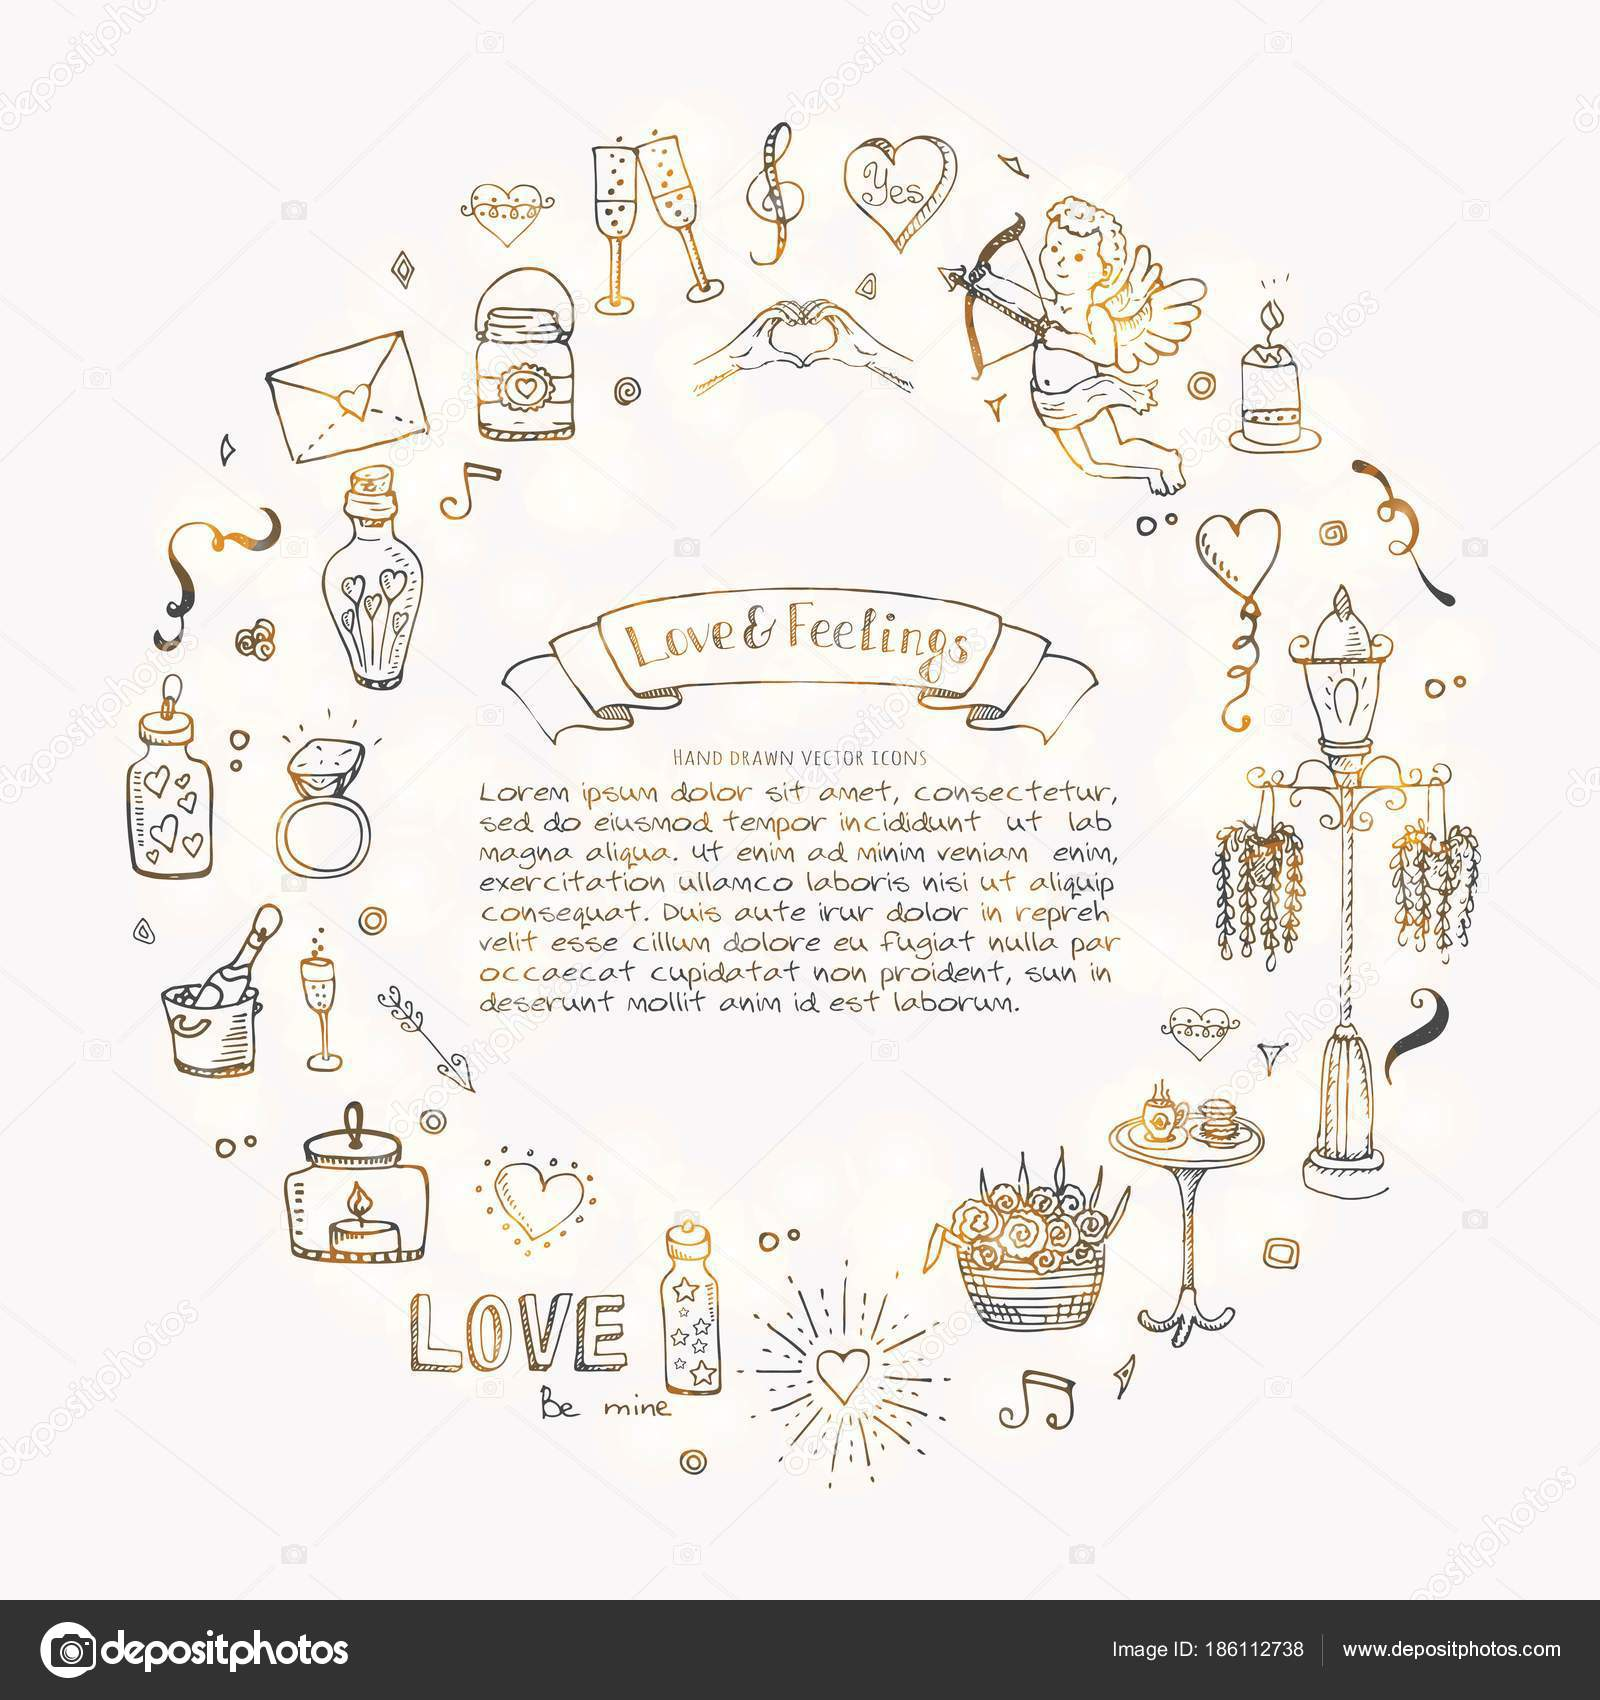 Hand Drawn Doodle Love Feelings Collection Vector